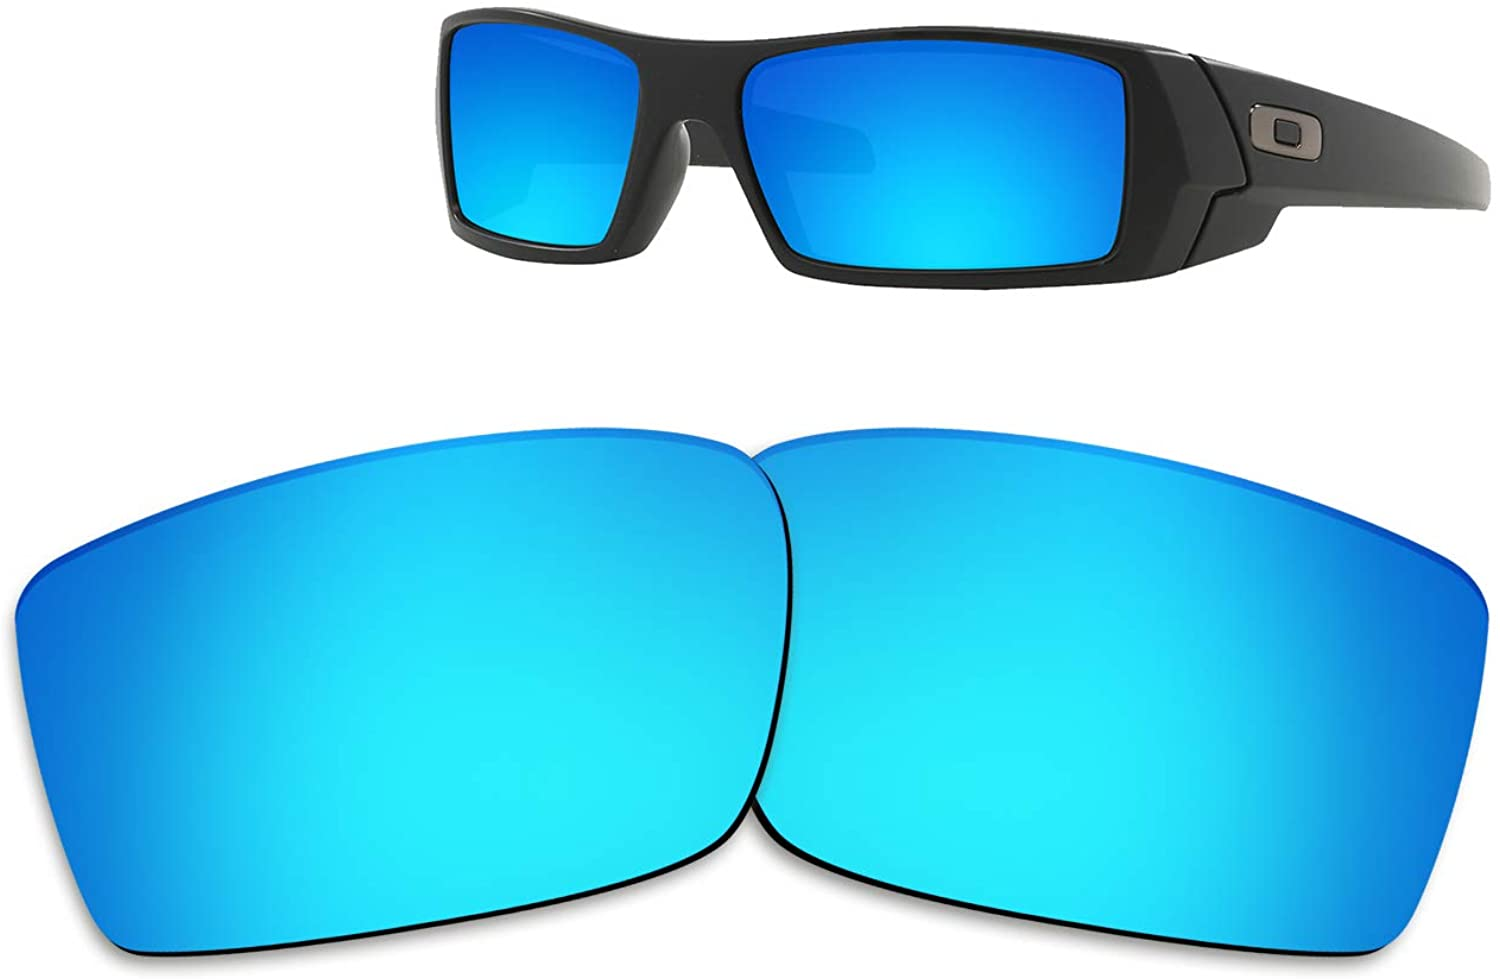 Kygear Anti-fading Polarized Lenses Compatible with Oakley Gascan Sunglasses